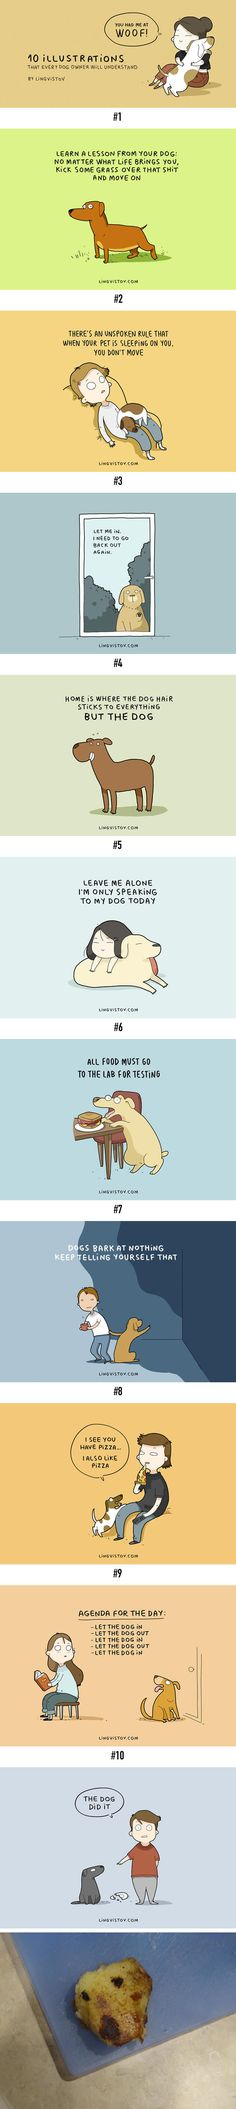 Shunga Erotica Controversial NSFW Illustration Pinterest - 10 funny illustrations every dog owner will relate to